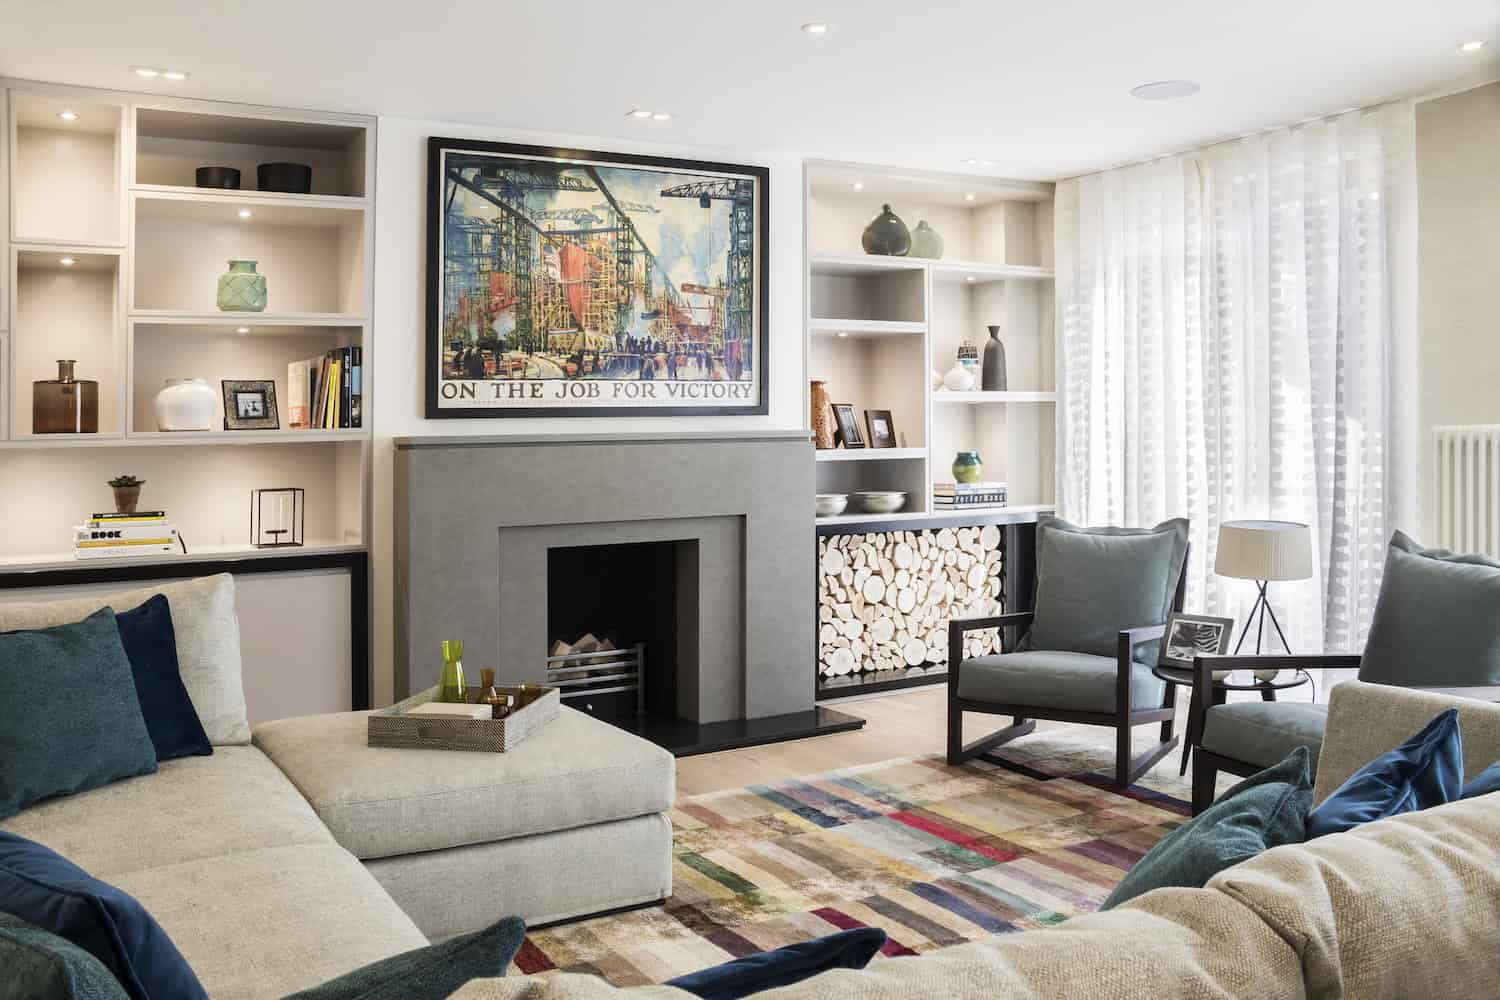 350 Great Room Design Ideas for 2019 on Small Living Room Ideas 2019  id=74300